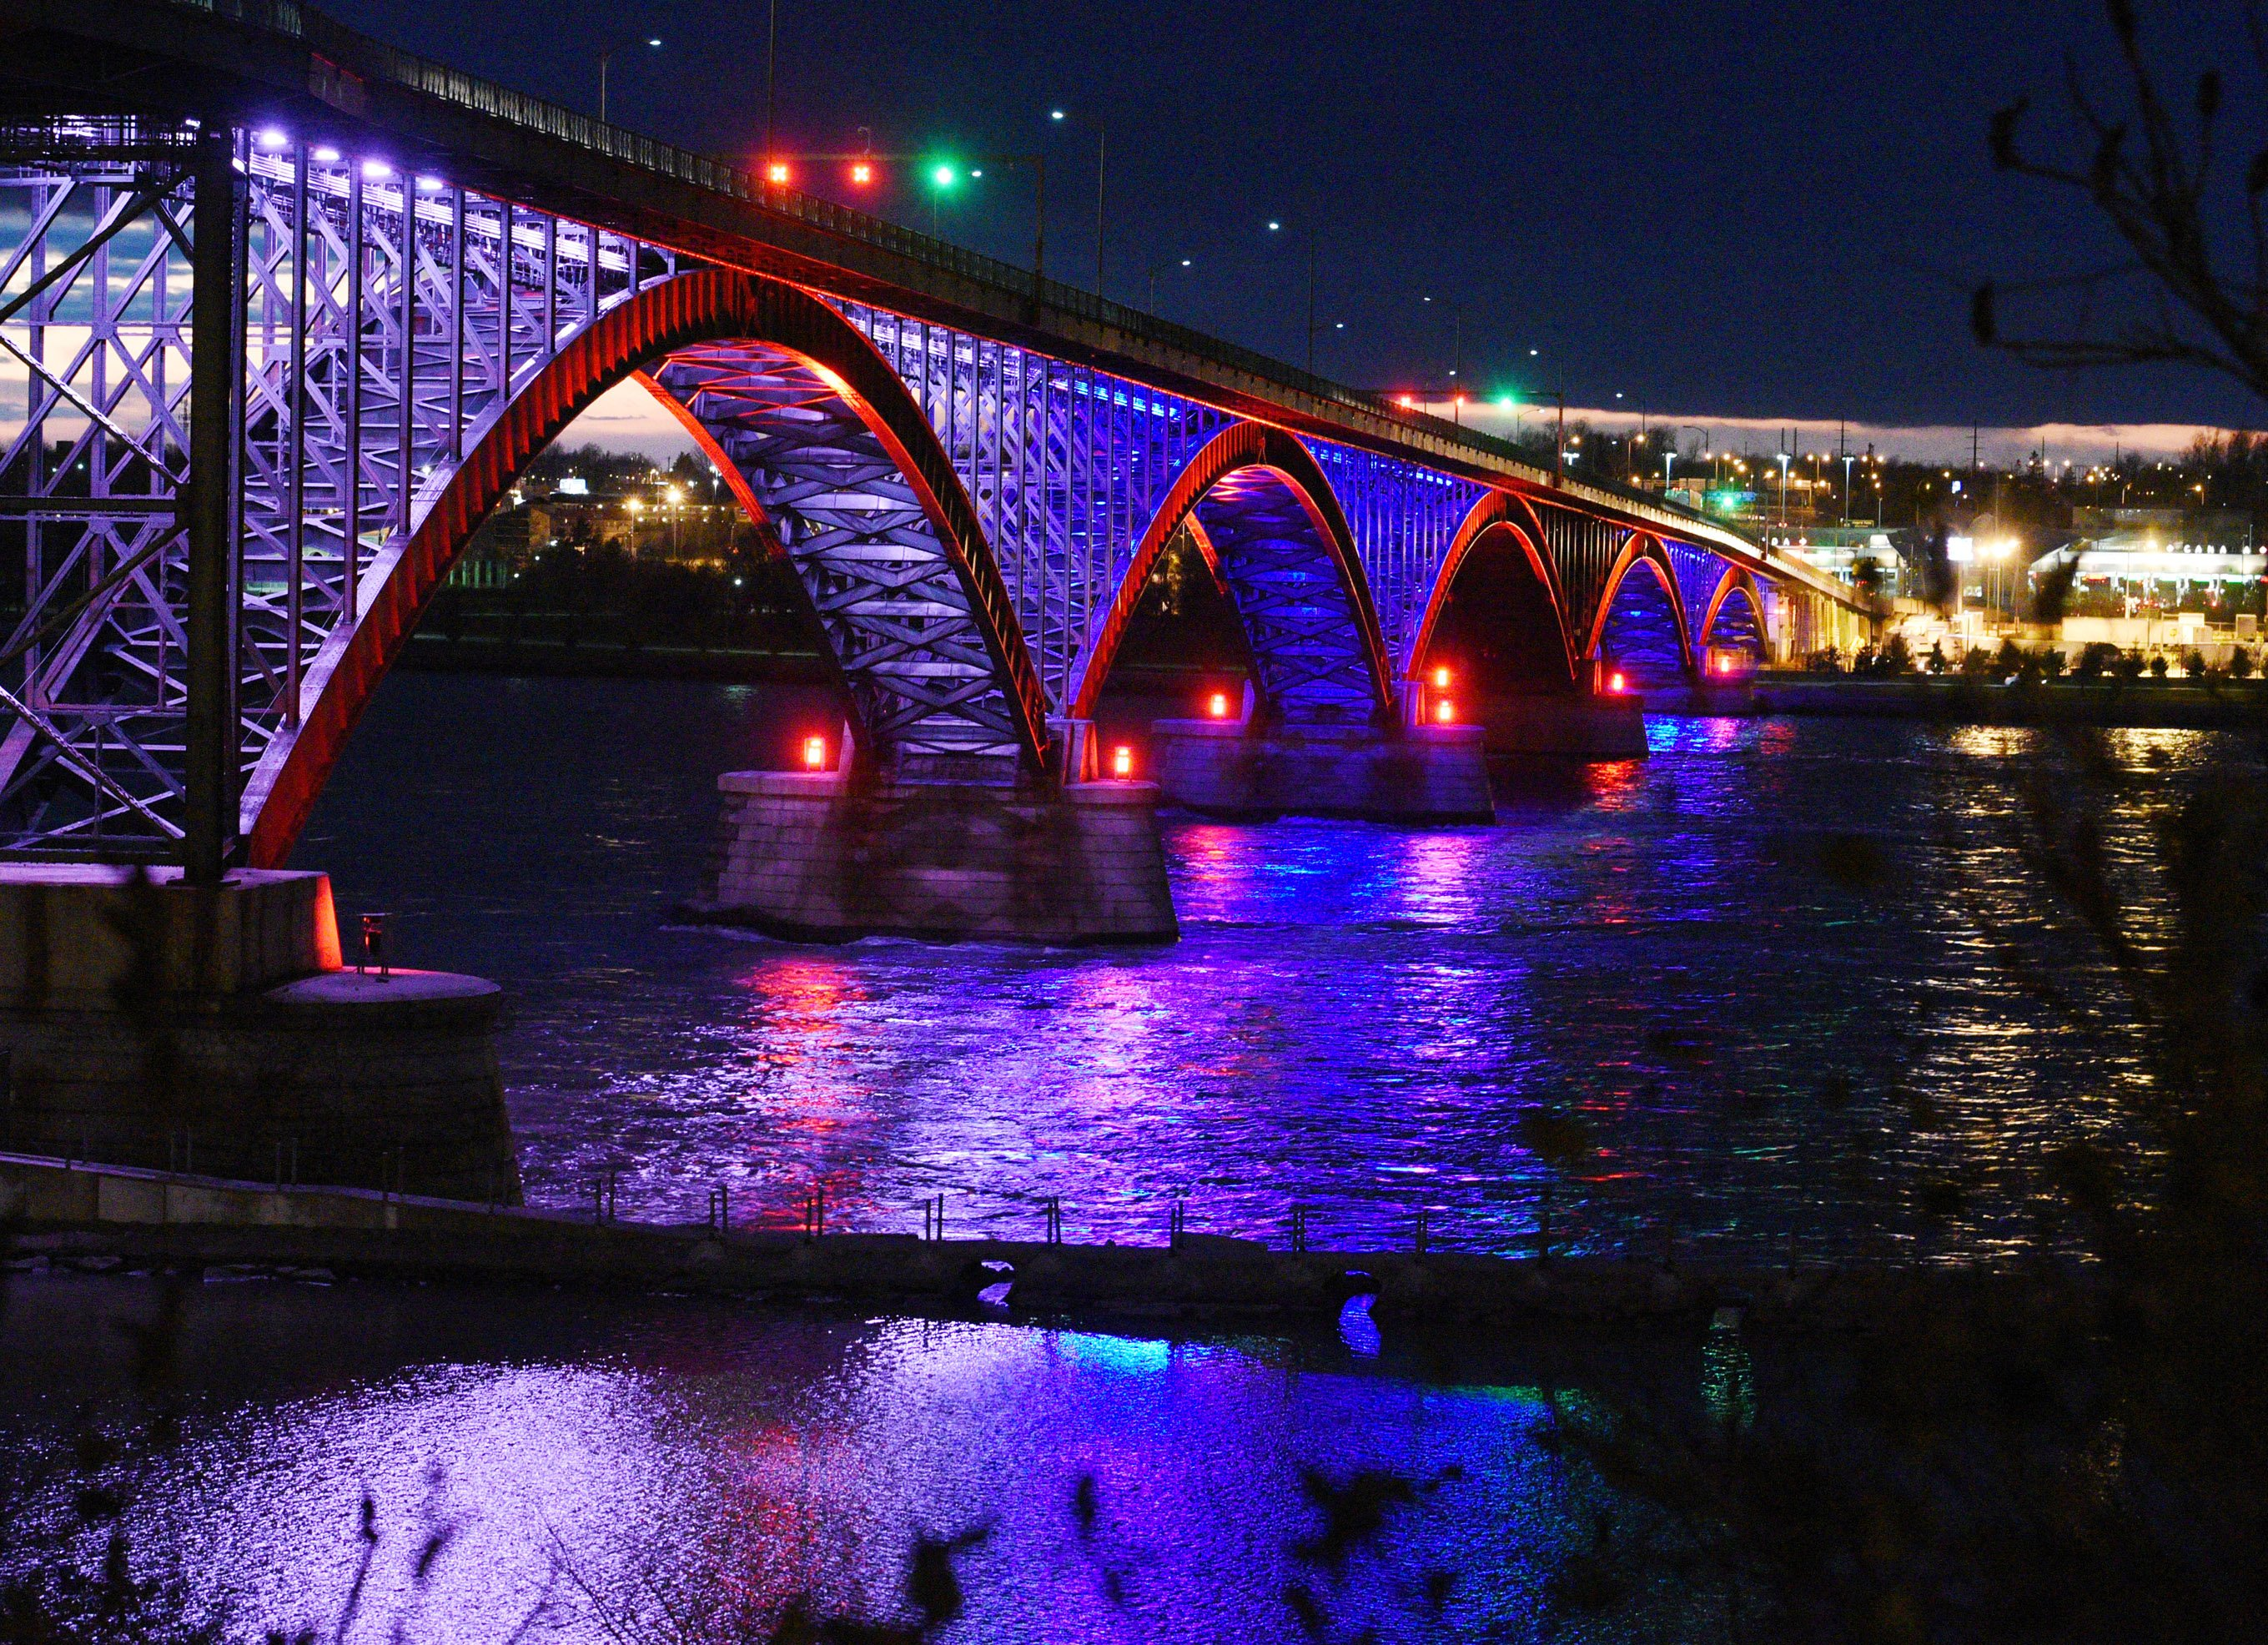 The International Peace Bridge, which connects Canada and the United States, glows with the colors of the French flag in honor of the victims of the Paris attacks,  in Buffalo, NY Nov. 14, 2015.